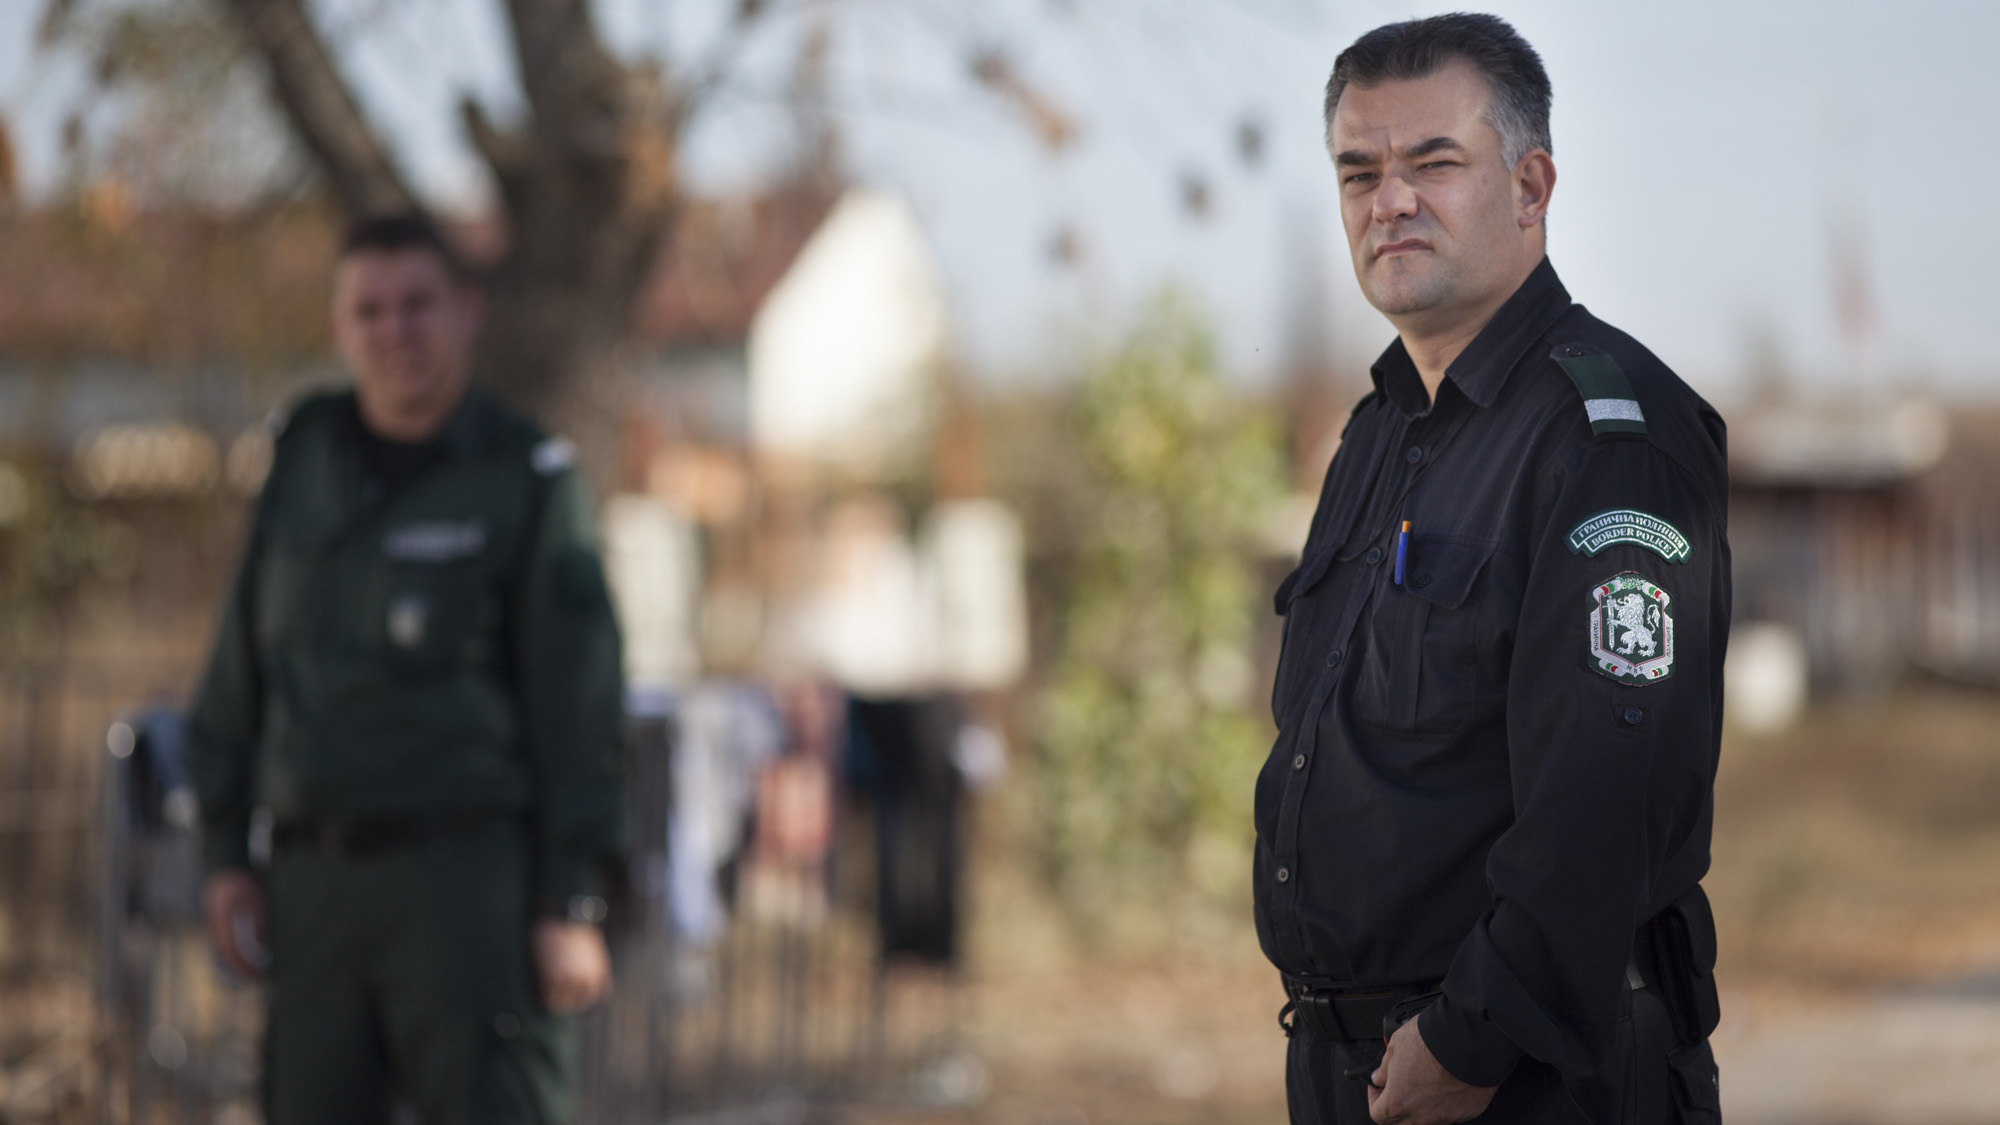 A Bulgarian border police officer at the Elhovo Border Police Station, where migrants are held and processed before being sent on to either detention centres or centres for asylum seekers.